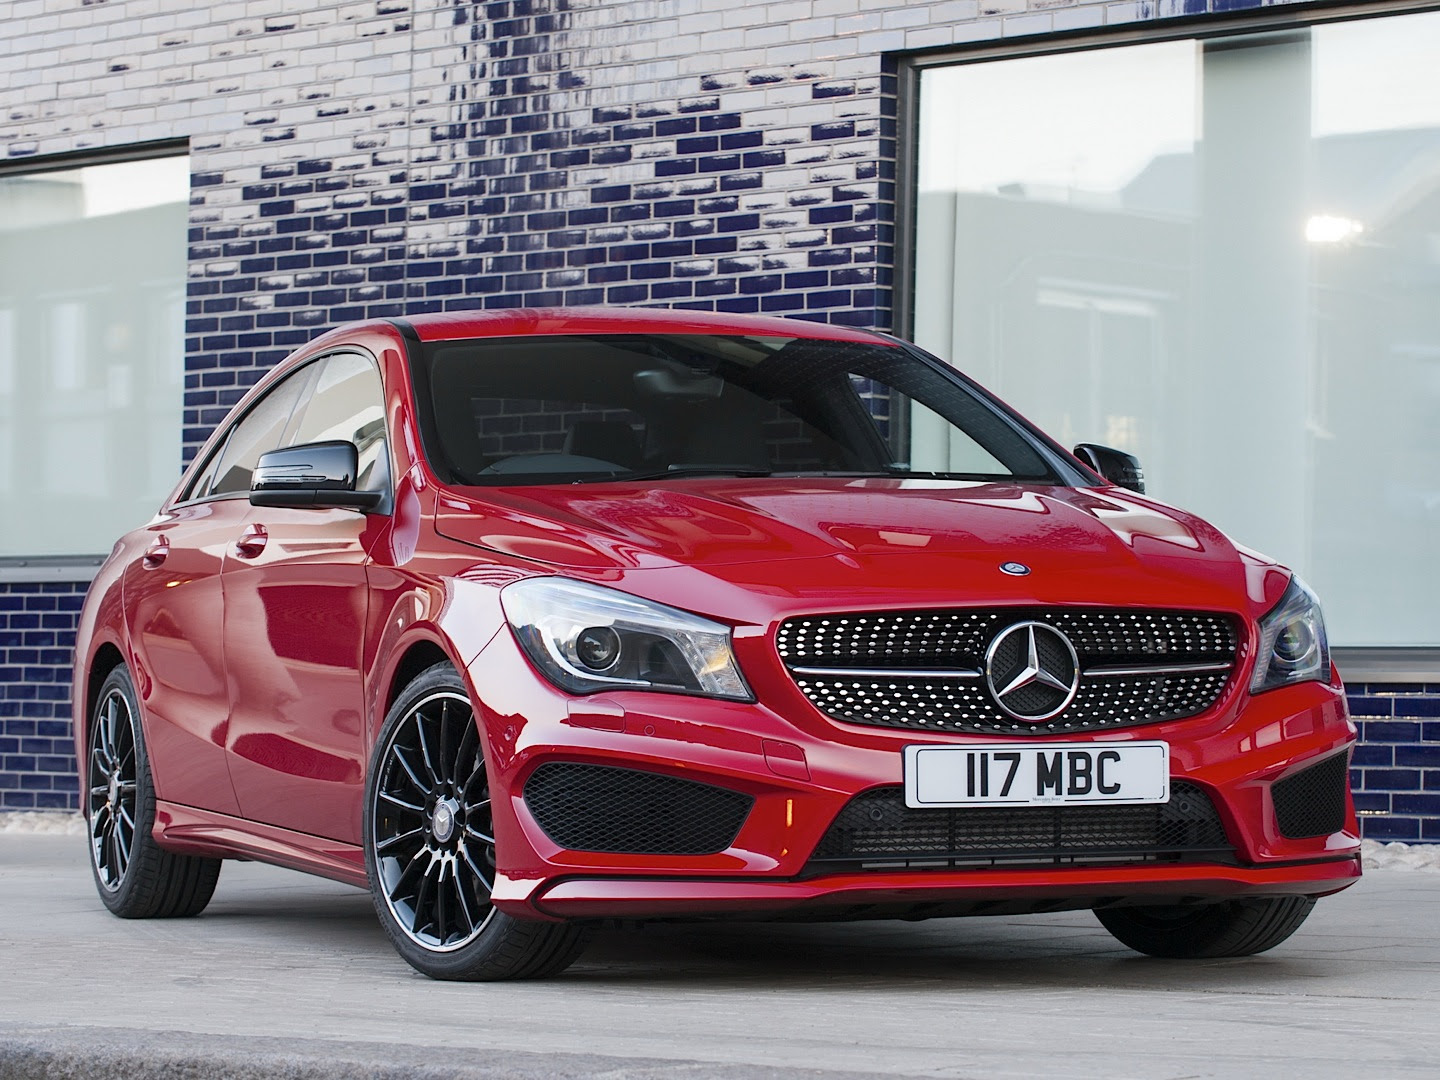 Mercedes-Benz CLA 220 CDI Gets Reviewed by Car - autoevolution